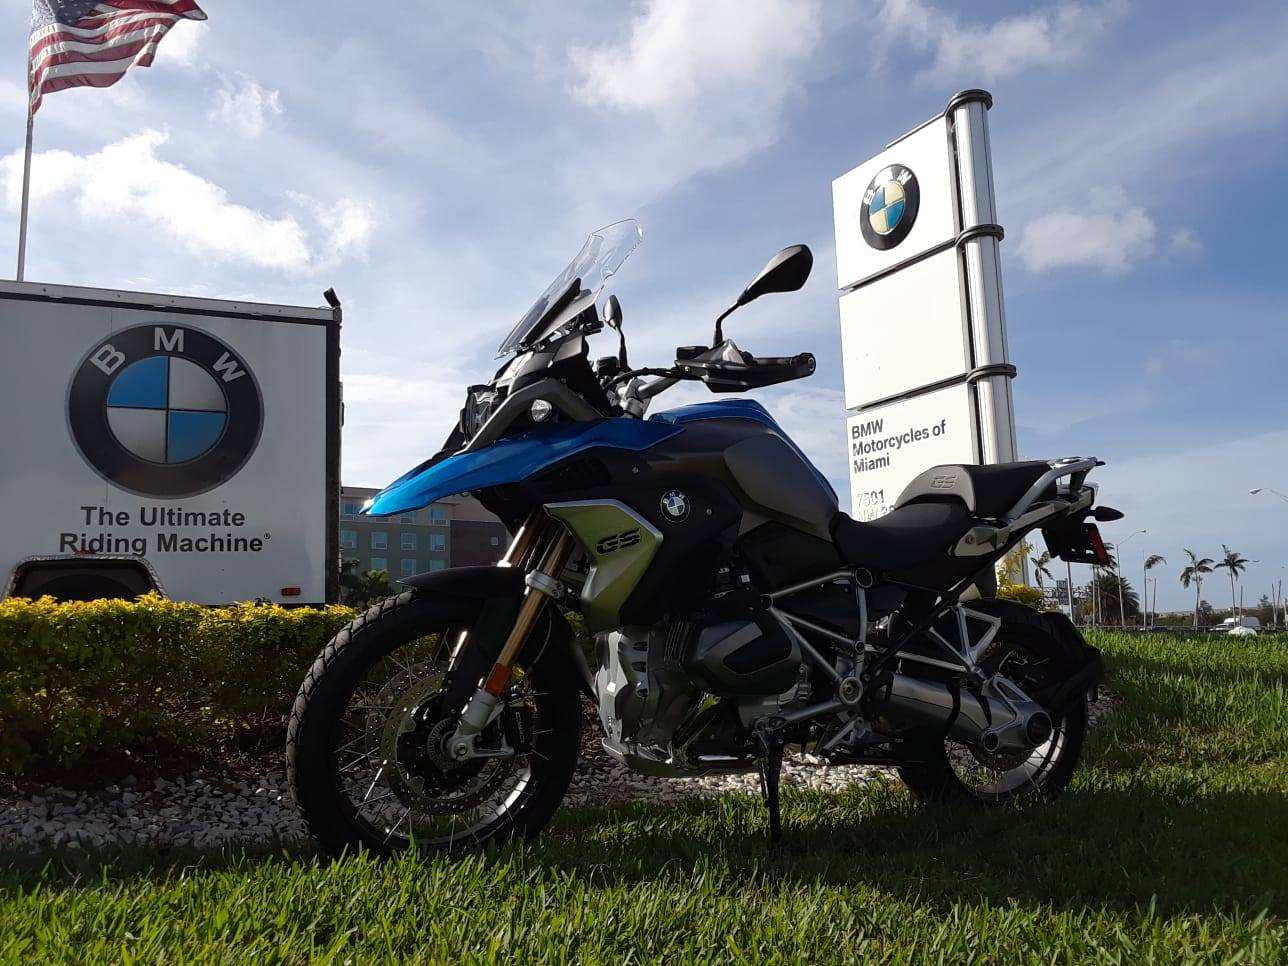 New 2019 BMW R 1250 GS for sale, New BMW R 1250GS, BMW R1250GS for sale, 1250GS, R1250GS, BMW Motorcycles of Miami, Motorcycles of Miami. Motorcycles Miami - Photo 10